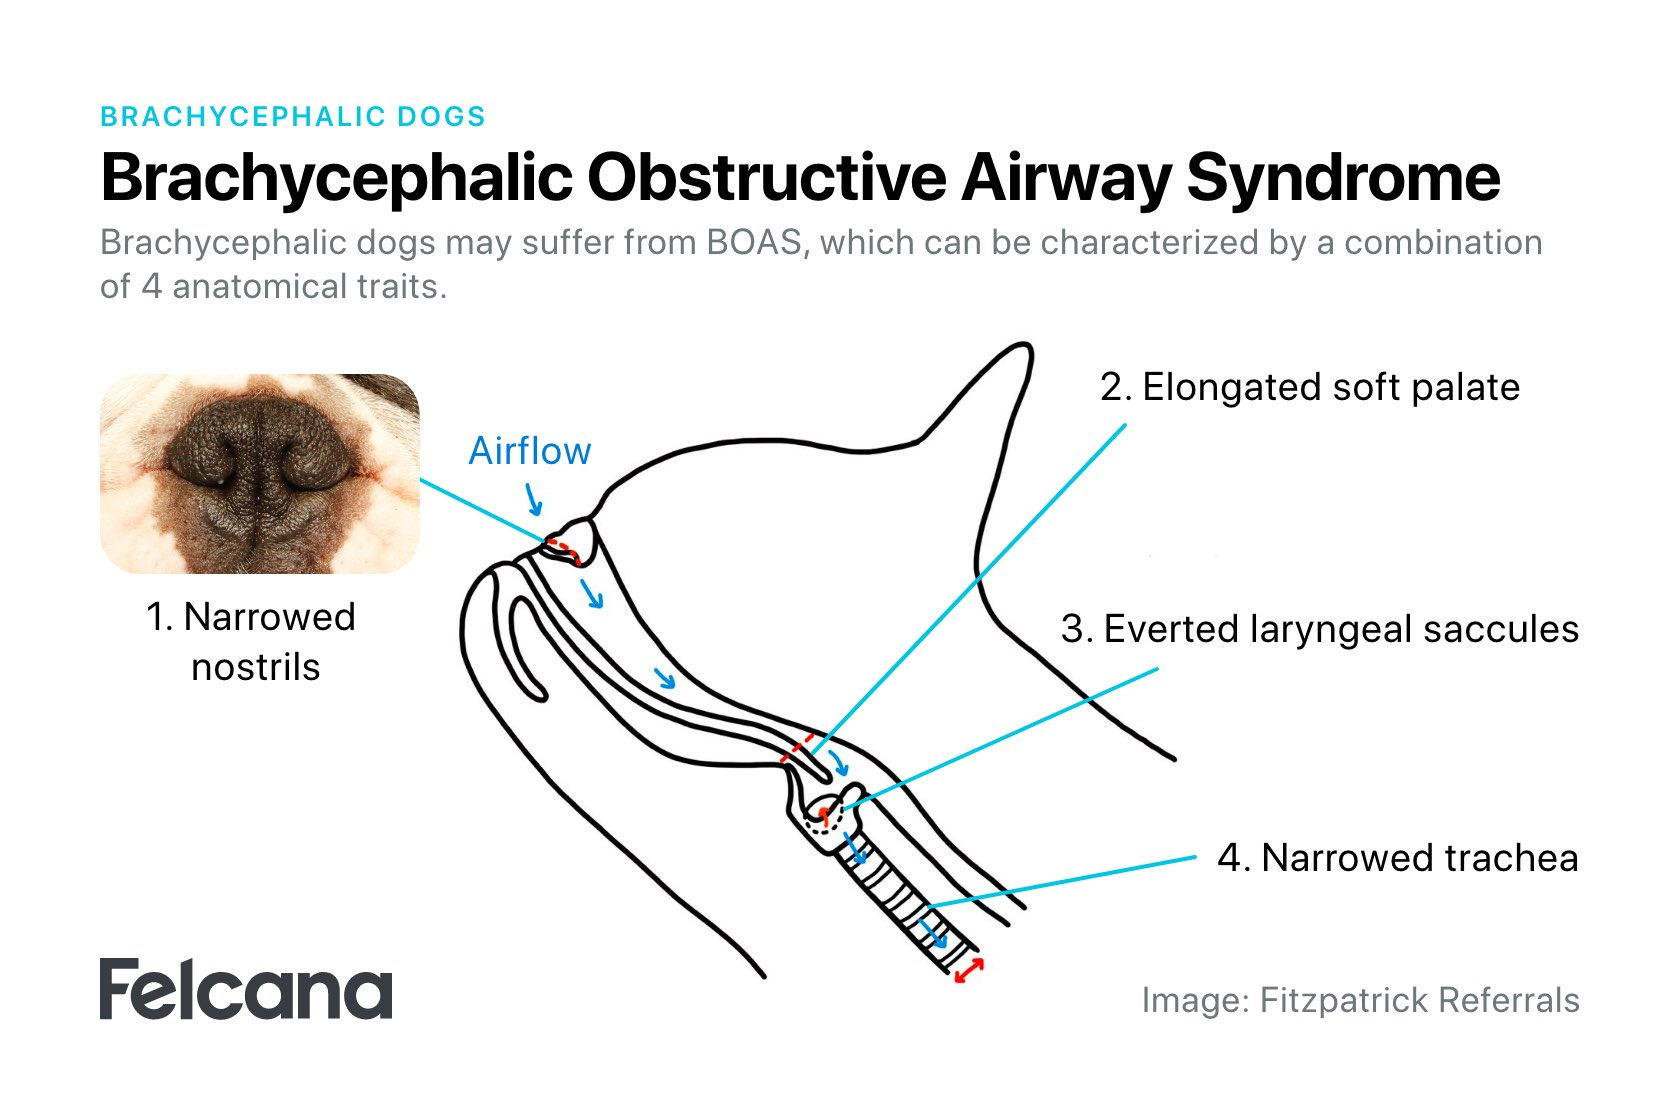 Diagram showing 4 main features of brachycephalic obstructive airway syndrome (BOAS) - Stenotic airways, elongated soft palate, everted laryngeal saccules, narrowed trachea